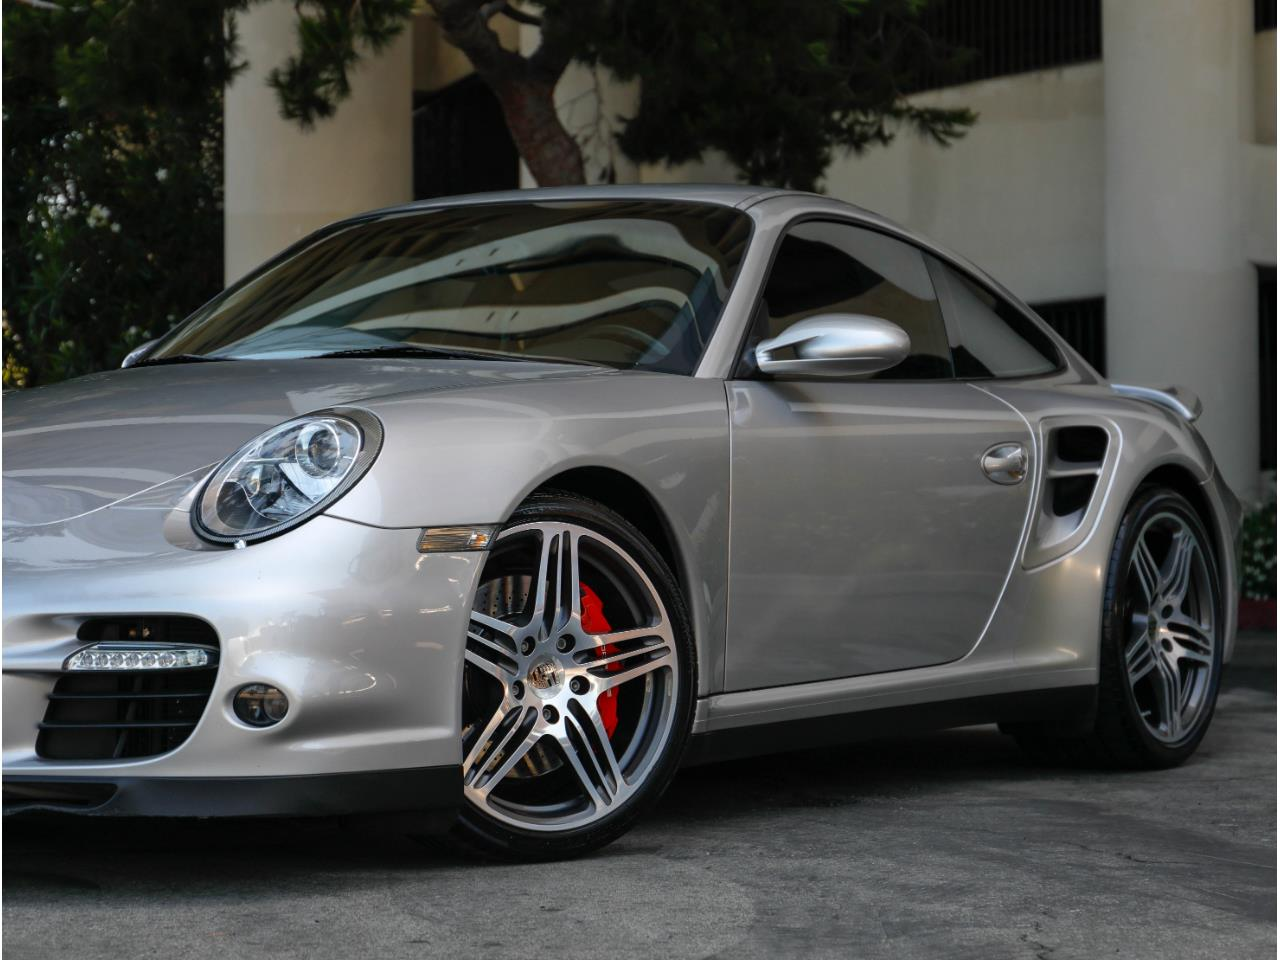 Large Picture of 2007 Porsche 911 Turbo located in California Offered by Chequered Flag International - QG8Z